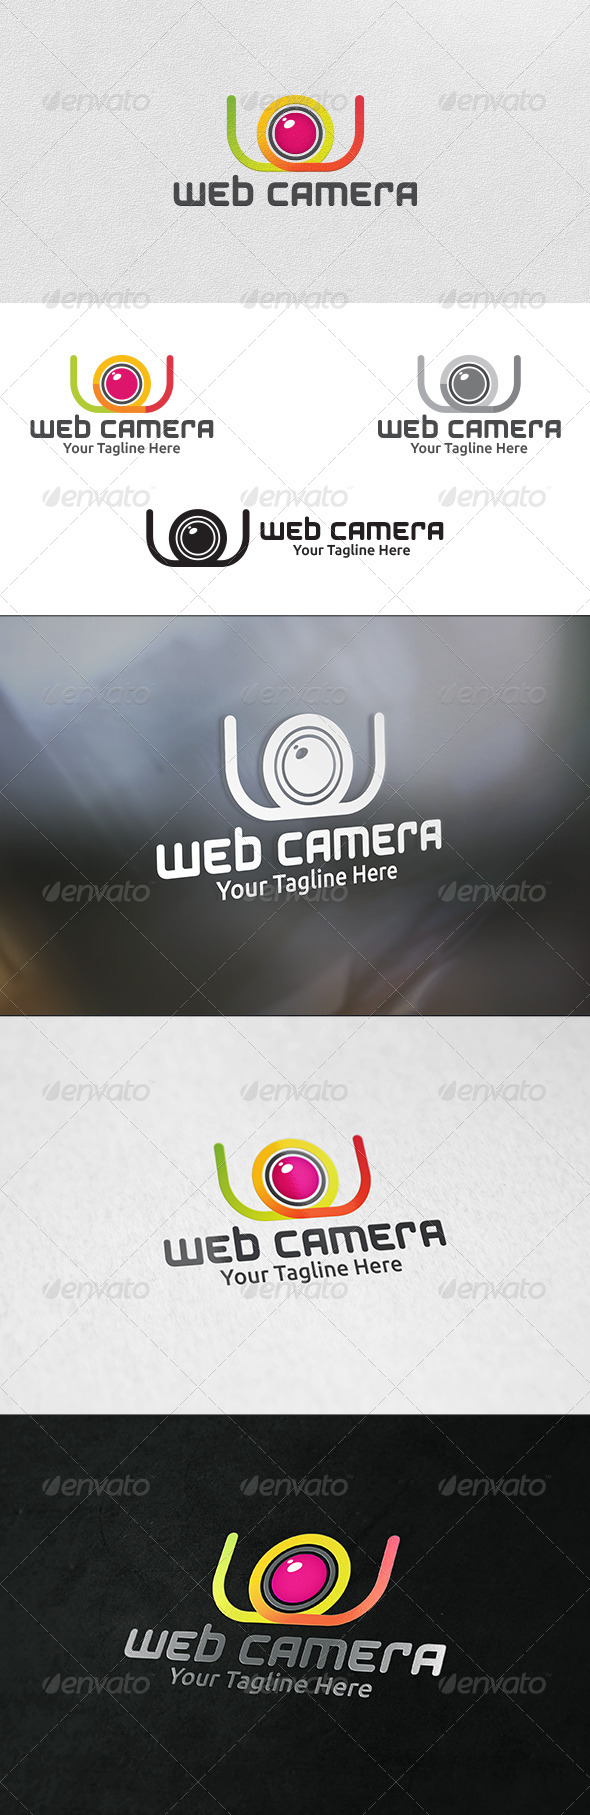 Web Camera - Logo Template - Objects Logo Templates